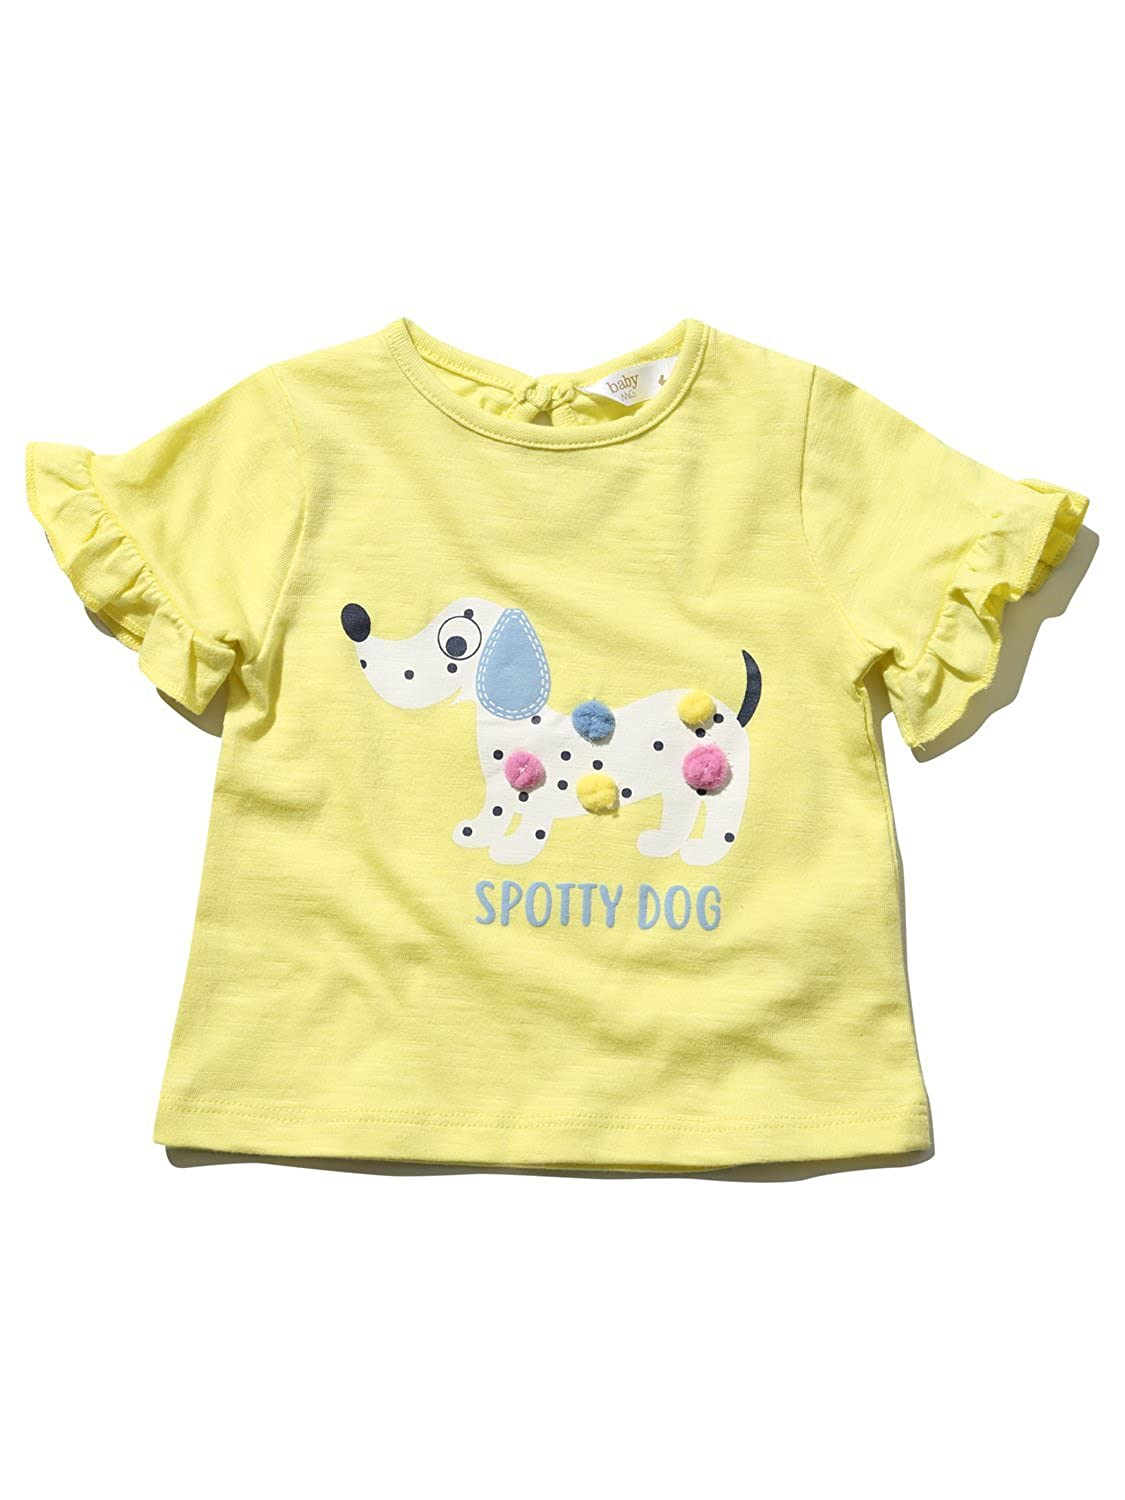 M& Co Baby Girl 100% Cotton Yellow Short Sleeve Frill Trim Dalmation Dog Pom Pom T-Shirt